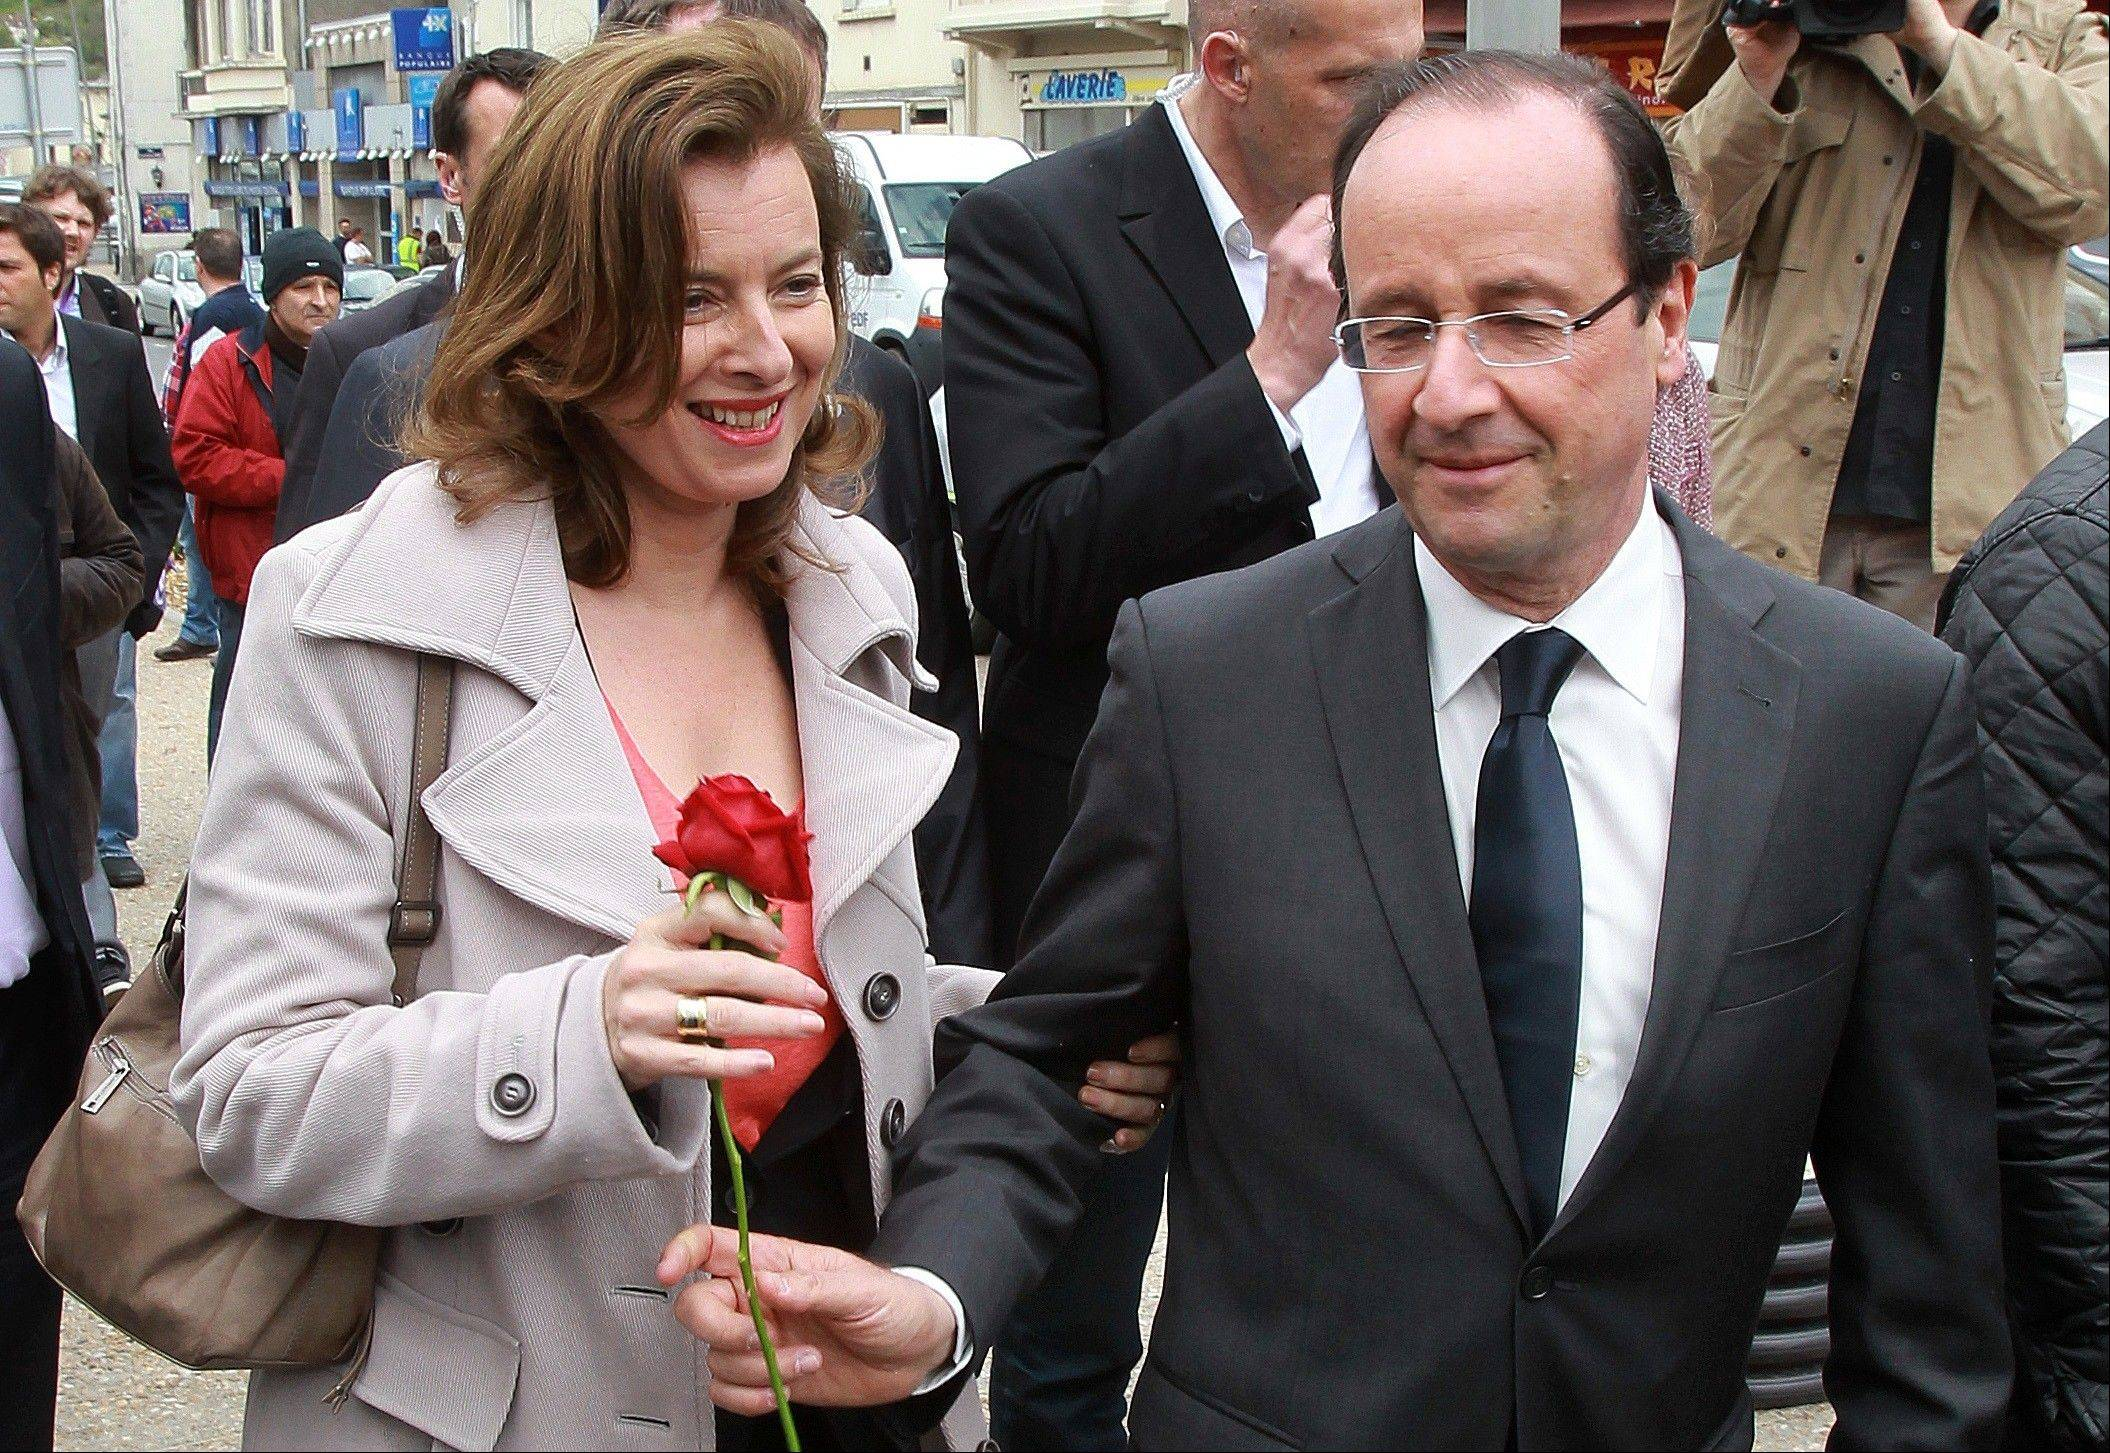 French President Francois Hollande offers a rose to his companion Valerie Trierweiler back in May 2012. The woman considered France�s first lady was hospitalized after a report that Hollande is having an affair with an actress, her office said Sunday.